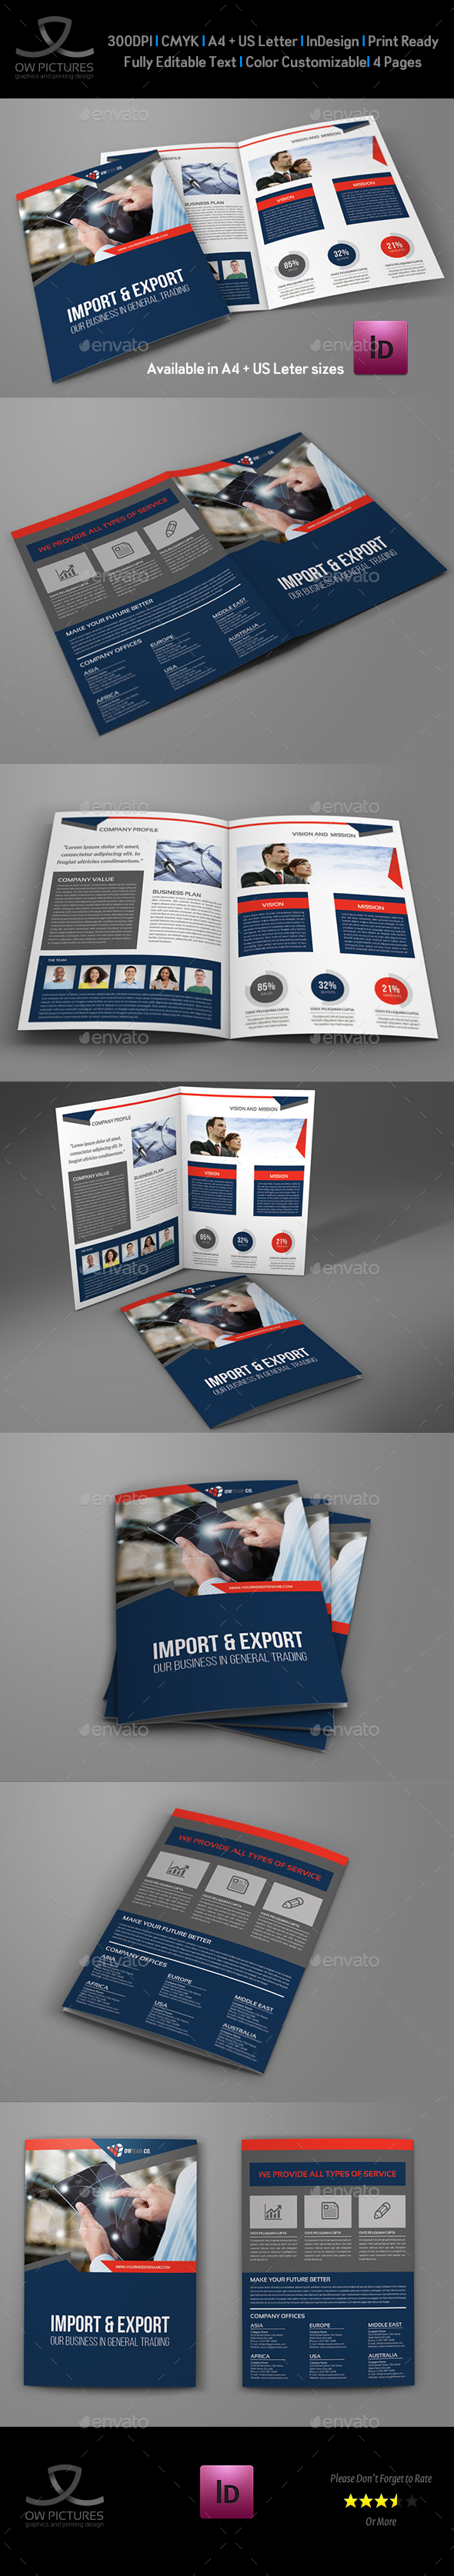 Company Profile Brochure Bi-Fold Template Vol.43 - Corporate Brochures